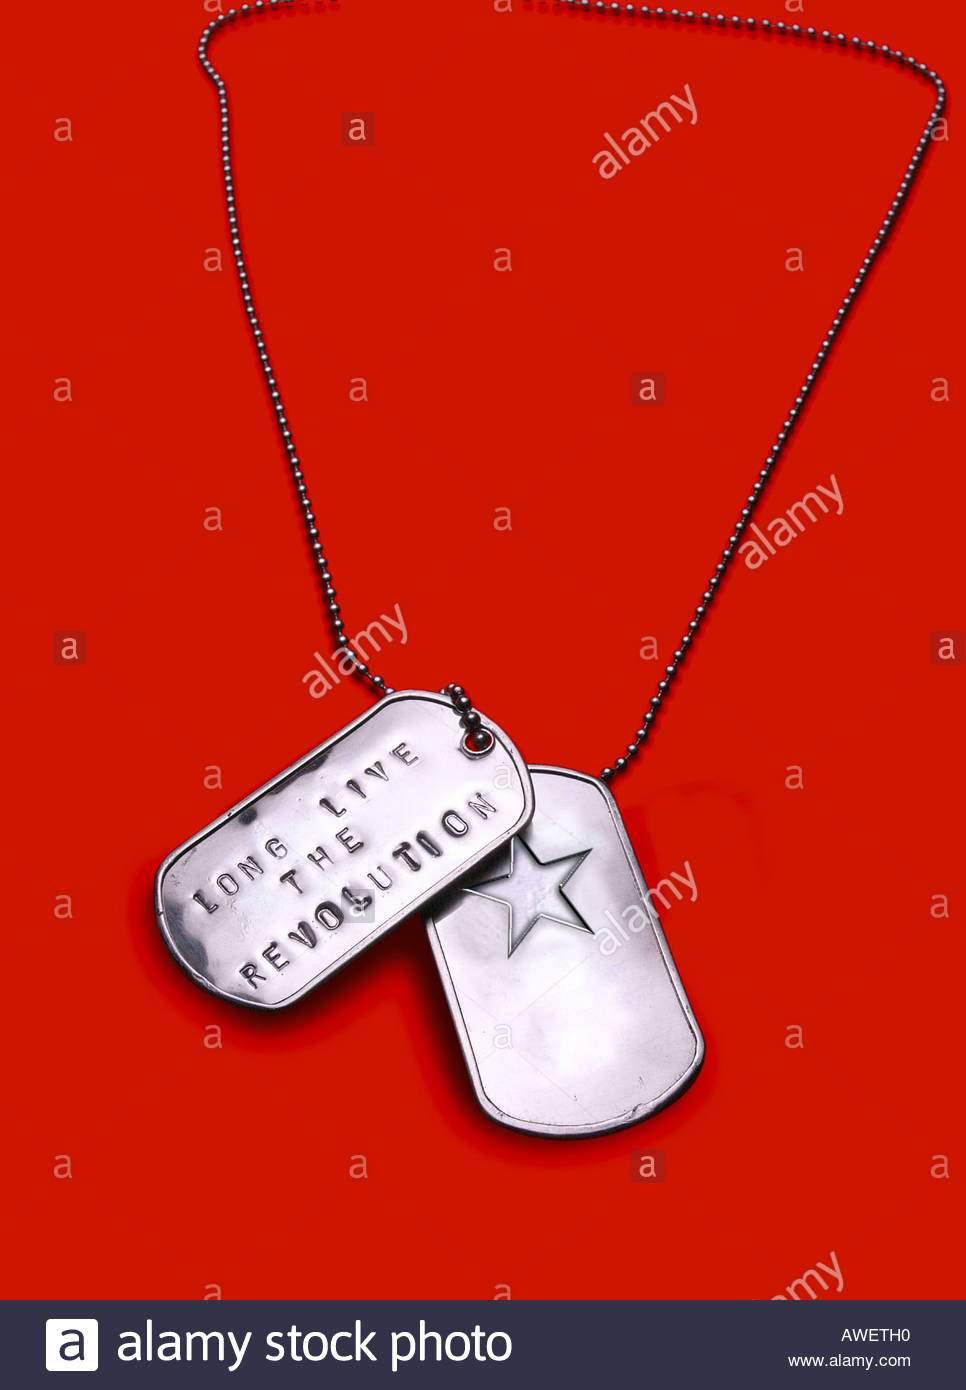 Close up of two military identification dog tags on a chain. Red background - Stock Image